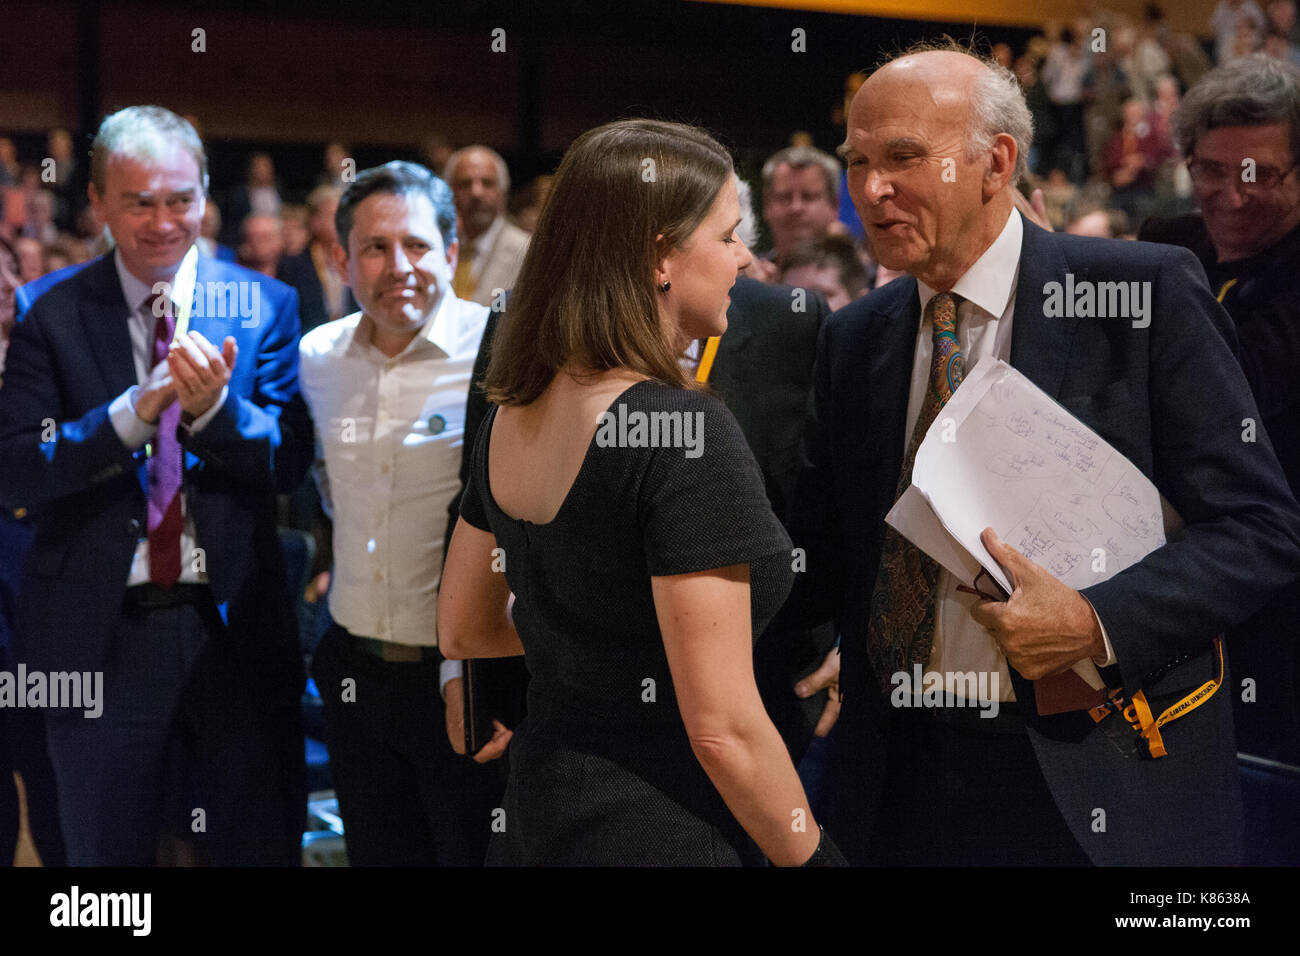 Bournemouth, UK. 17th Sep, 2017. Party Leader Sir Vince Cable congratulates Jo Swinson, the new Deputy Leader, following her keynote speech at the Liberal Democrat Autumn Conference. Credit: Mark Kerrison/Alamy Live News - Stock Image